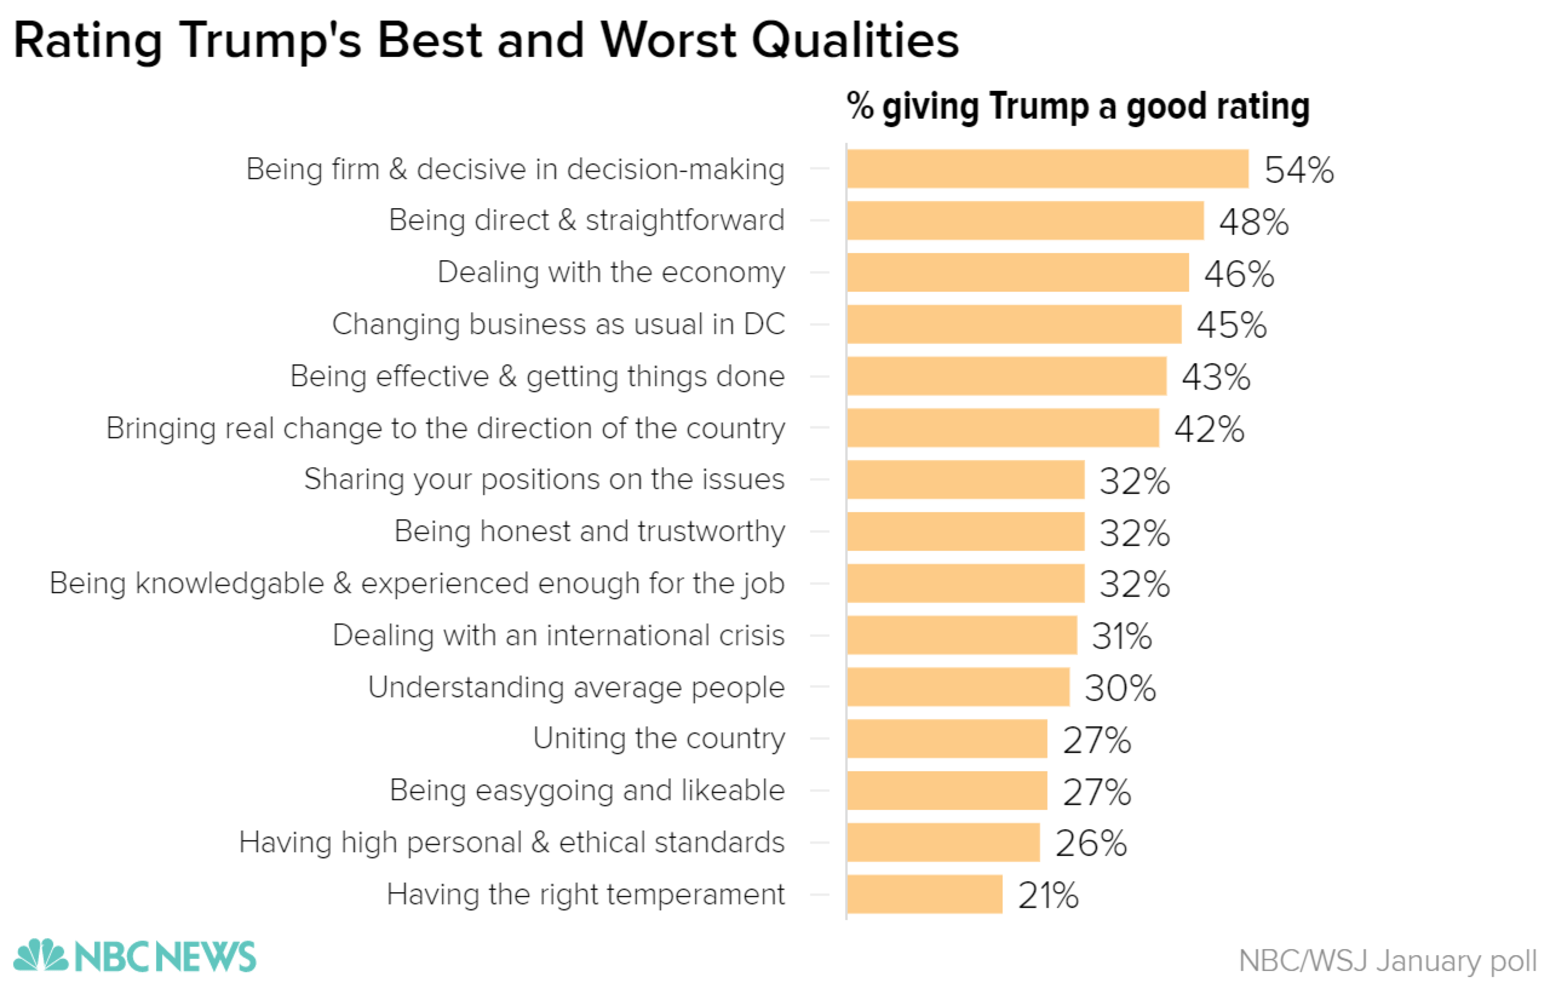 trump enters office historically low approval rating nbc news uniting the country 27 percent being easygoing and likable 27 percent having high personal and ethical standards 26 percent and having